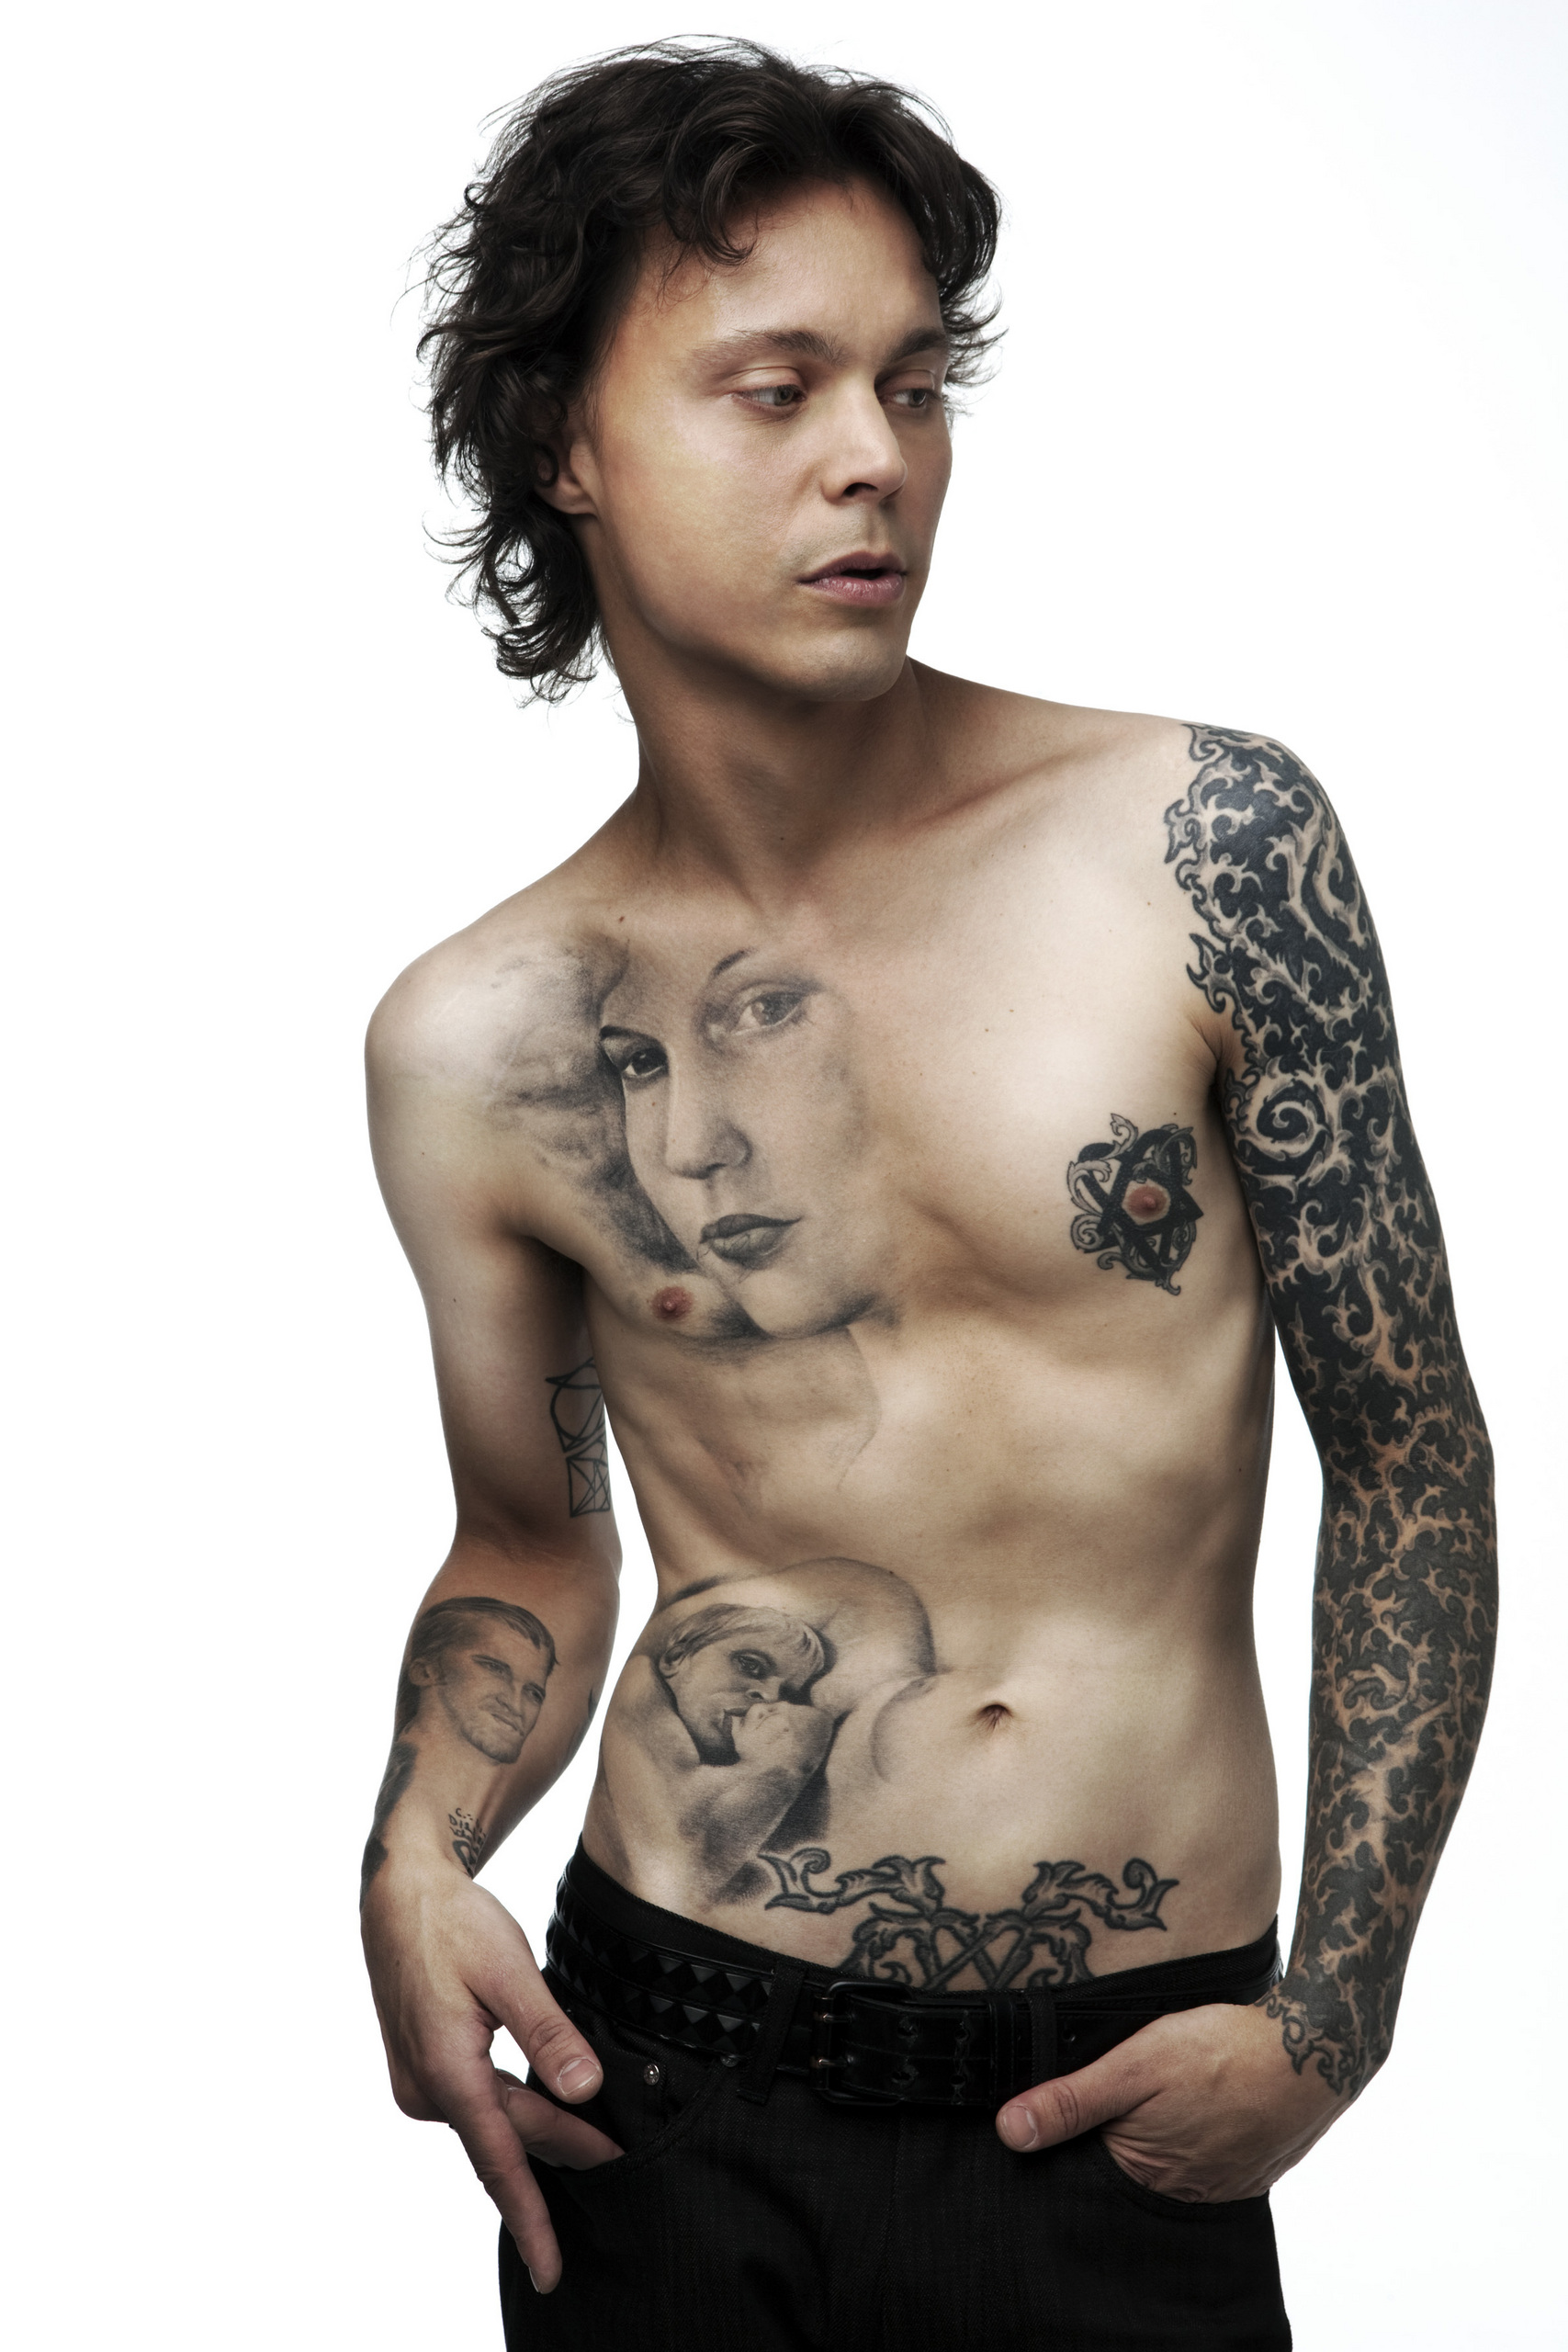 ville valo - Ville Valo Photo (11981512) - Fanpop